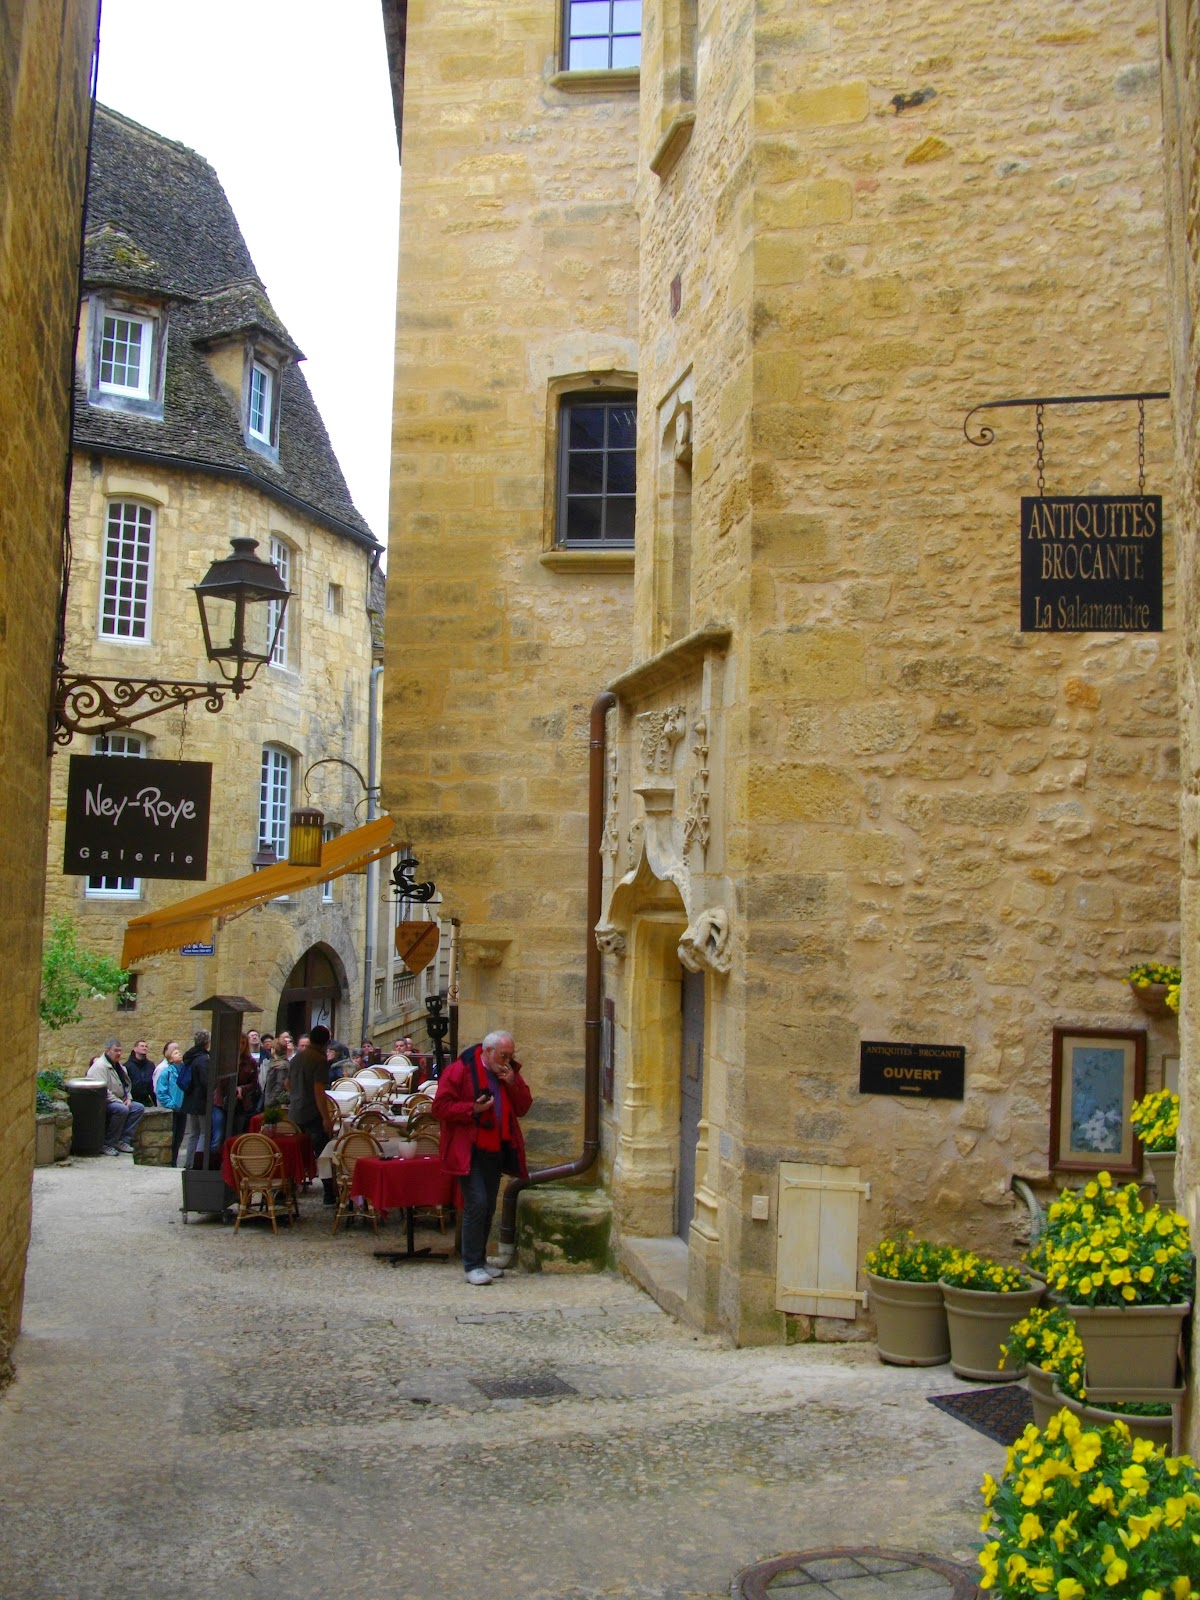 Blogger Blog Private Trip To Sarlat La Canéda France Part 2 Life In Luxembourg